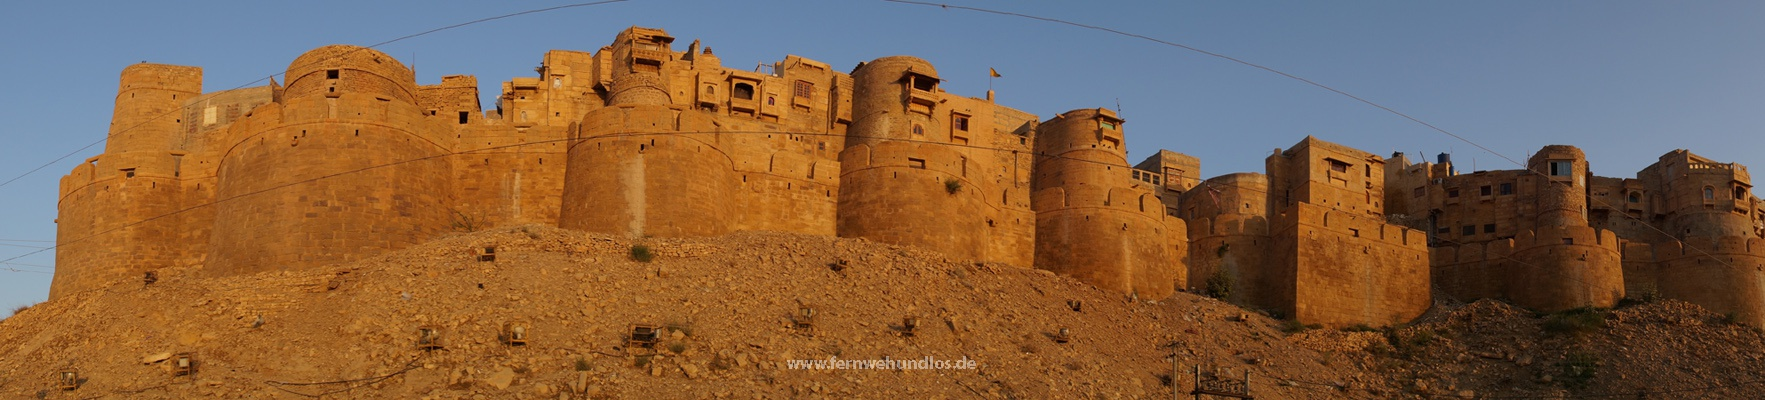 b_0_0_3549_10_images_stories_Asienfotos_indienbilder_1278_Altstadt-Jaisalmer.jpeg